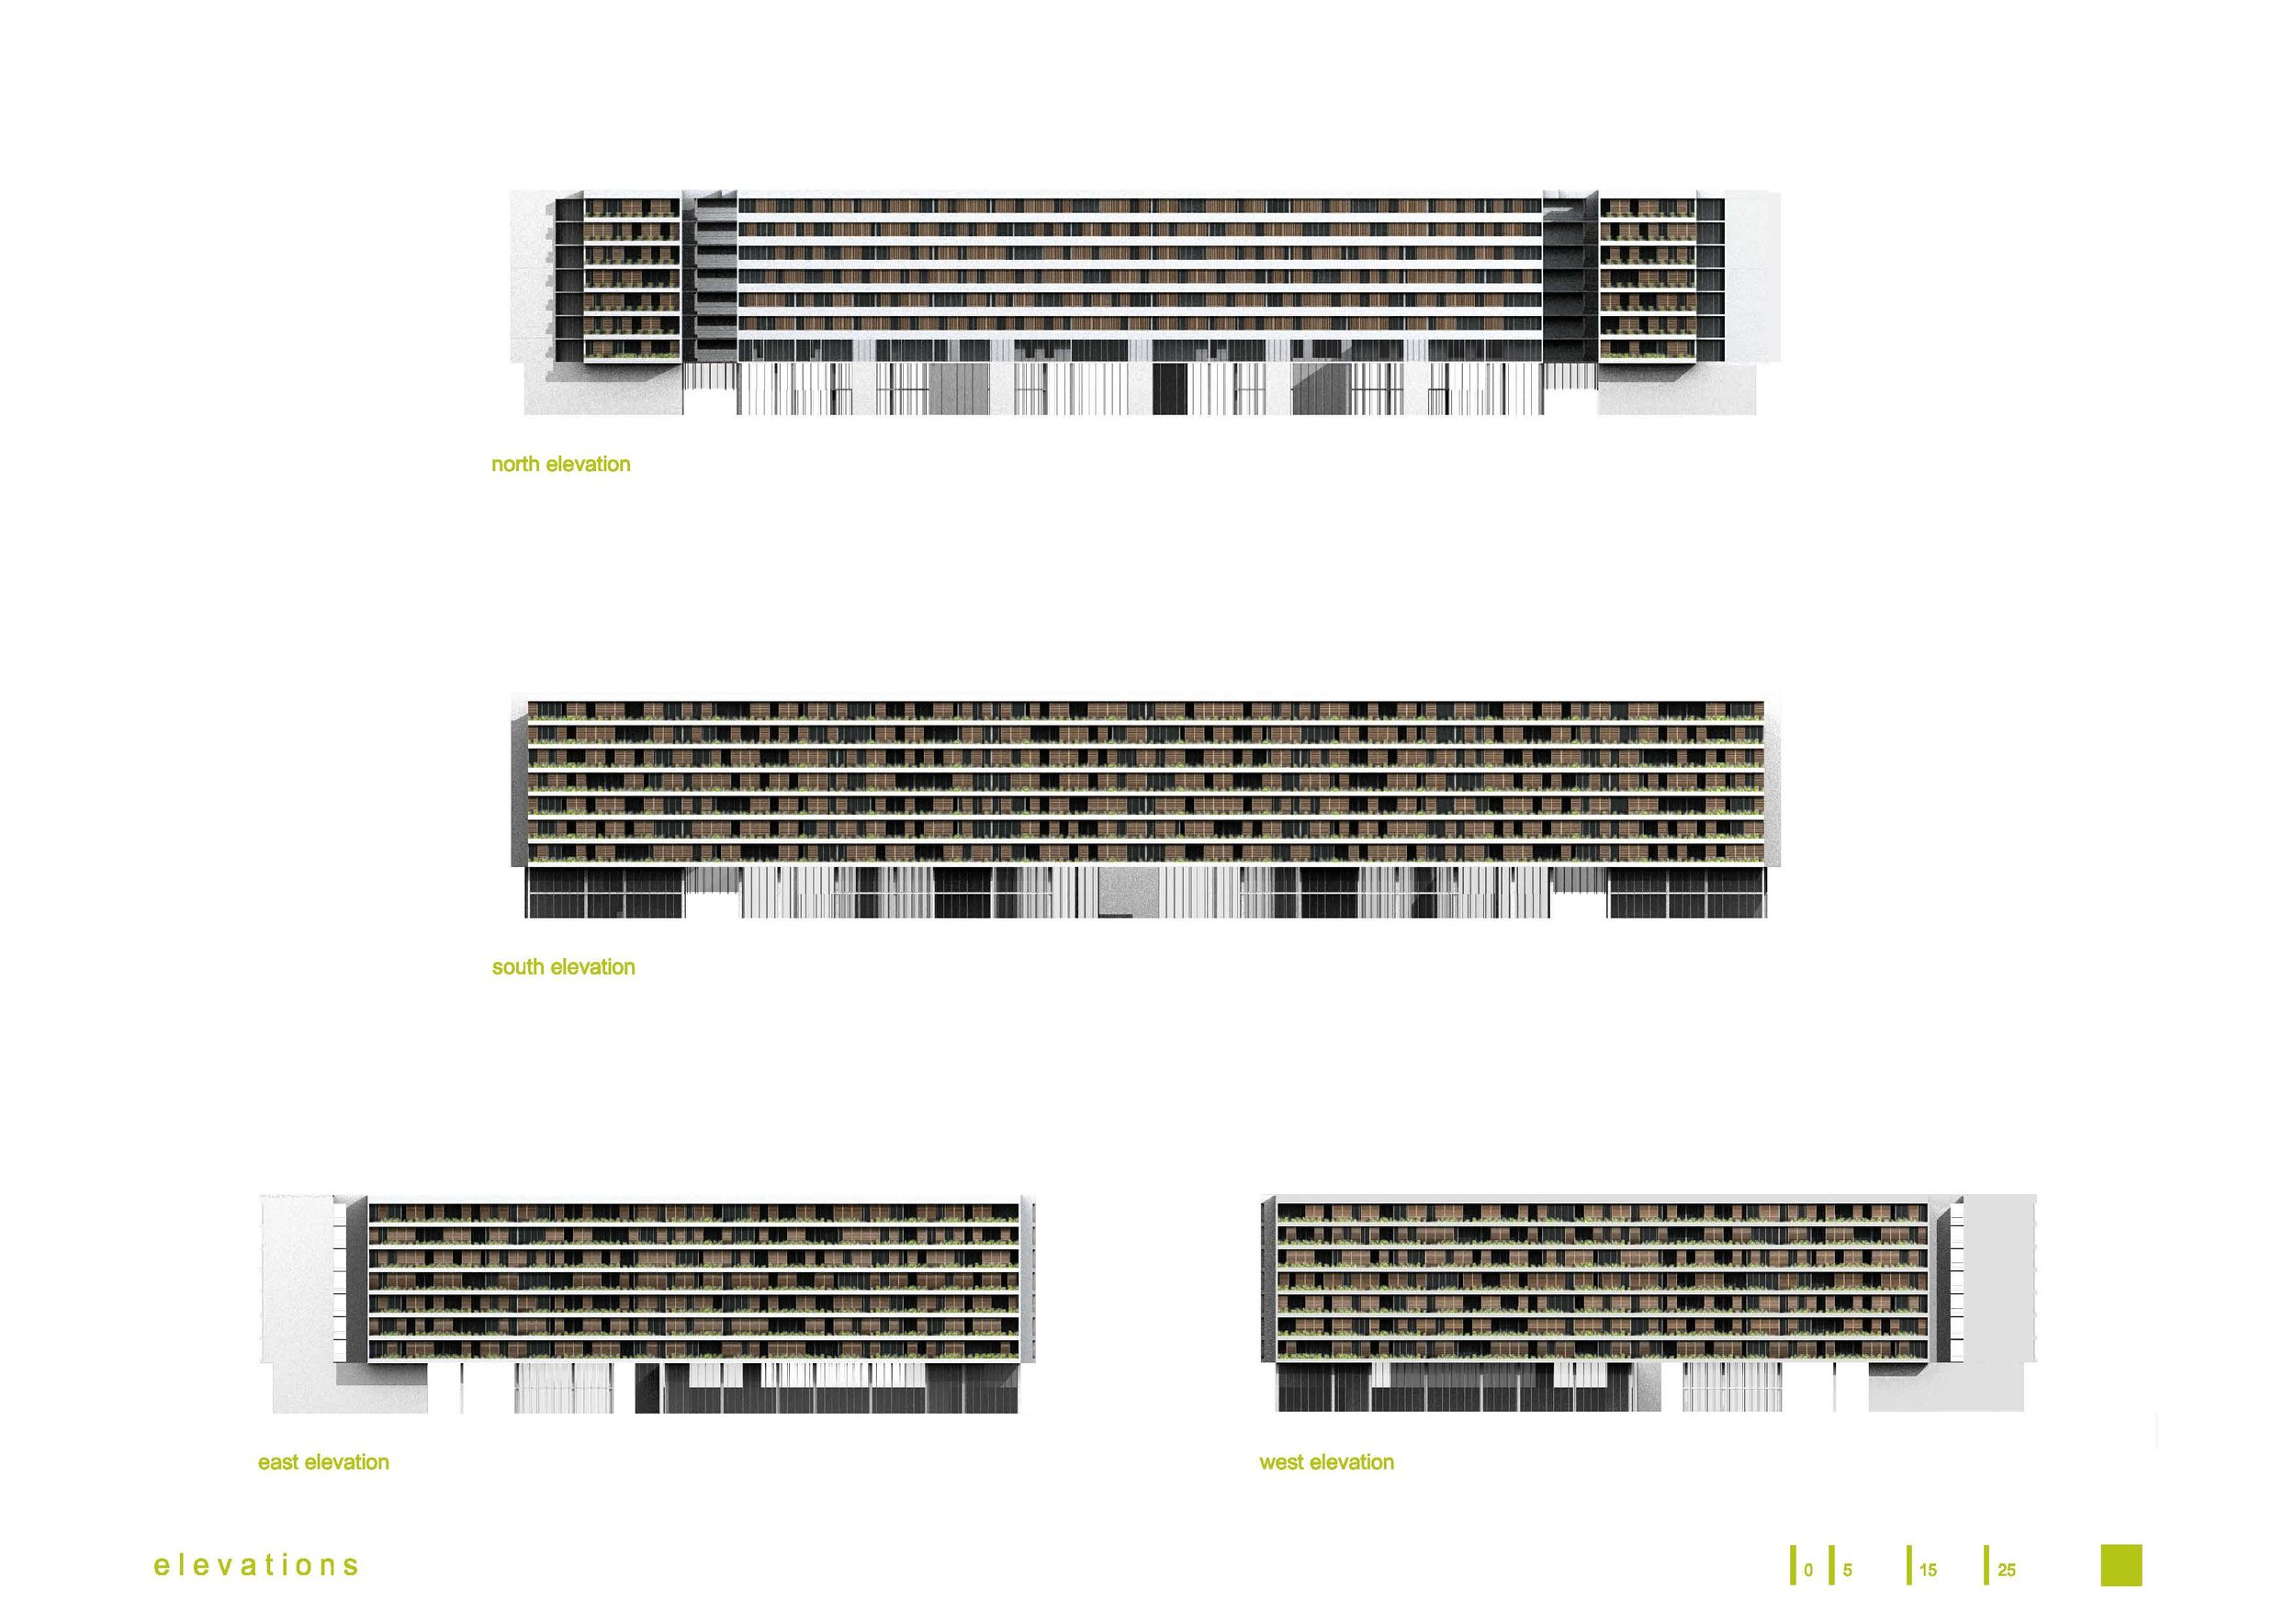 Sredisce_10_elevations_EN.jpg